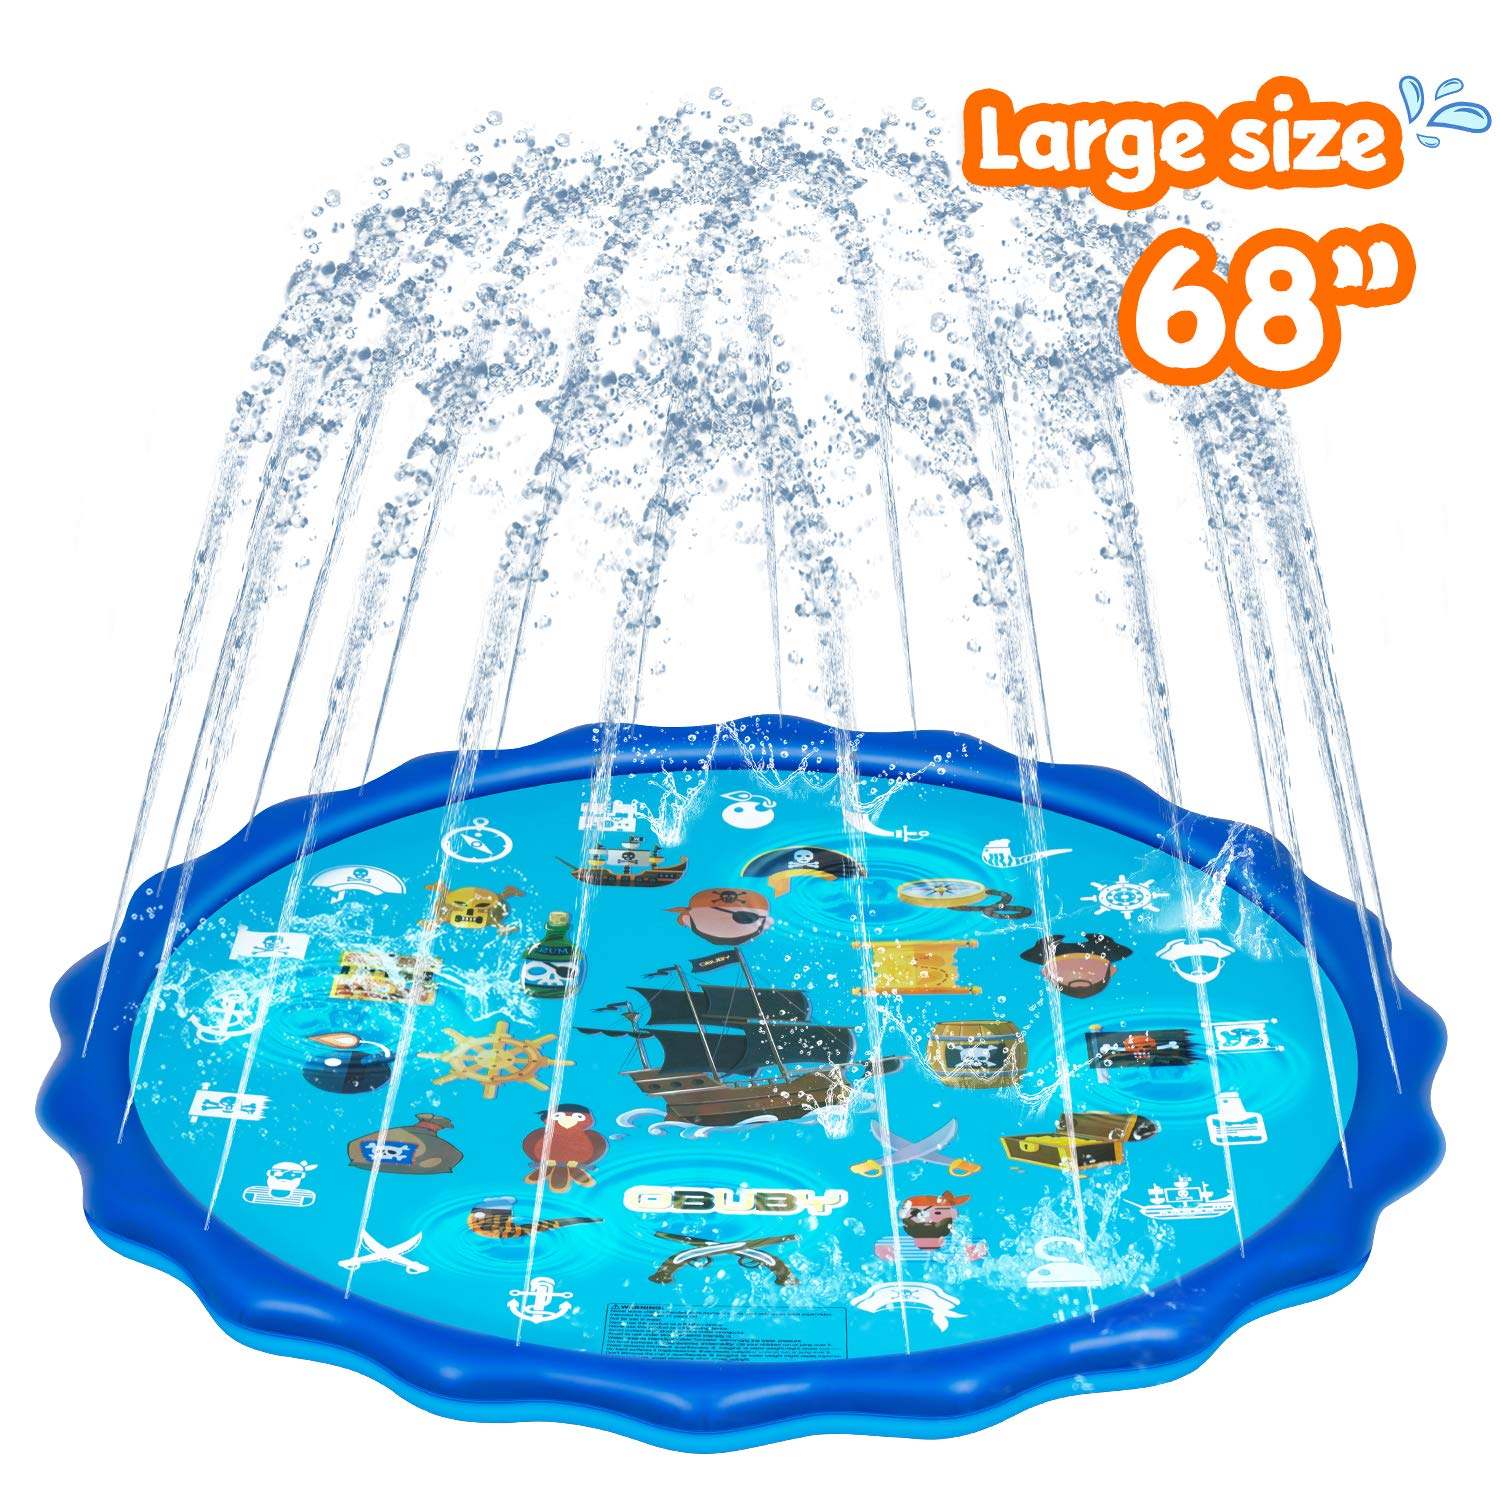 Obuby Sprinkle & Splash Play Mat Sprinkler for Kids Upgraded 68' Summer Outdoor Water Toys Wading Pool Splash pad for Toddlers Baby Outside Water Play Mat for 1-12 Years Old Children Boys Girls